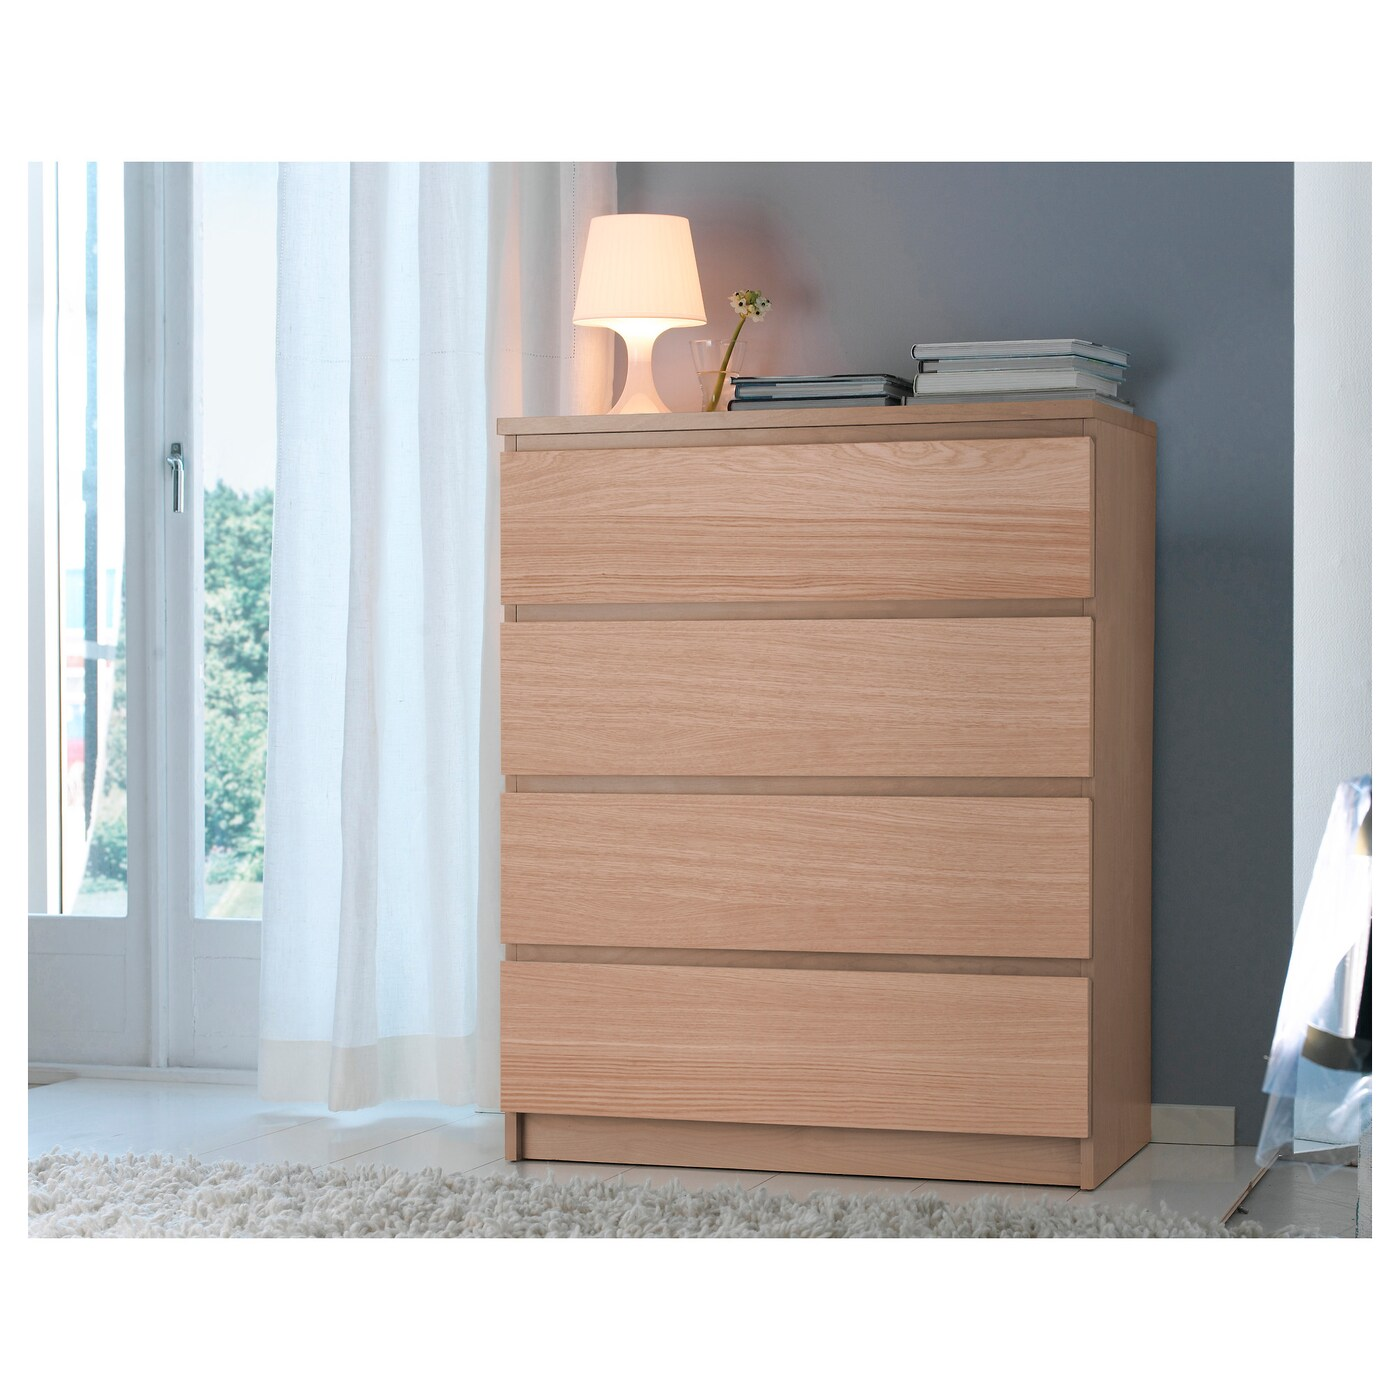 Malm chest of 4 drawers oak veneer 80x100 cm ikea for Comodas en ikea